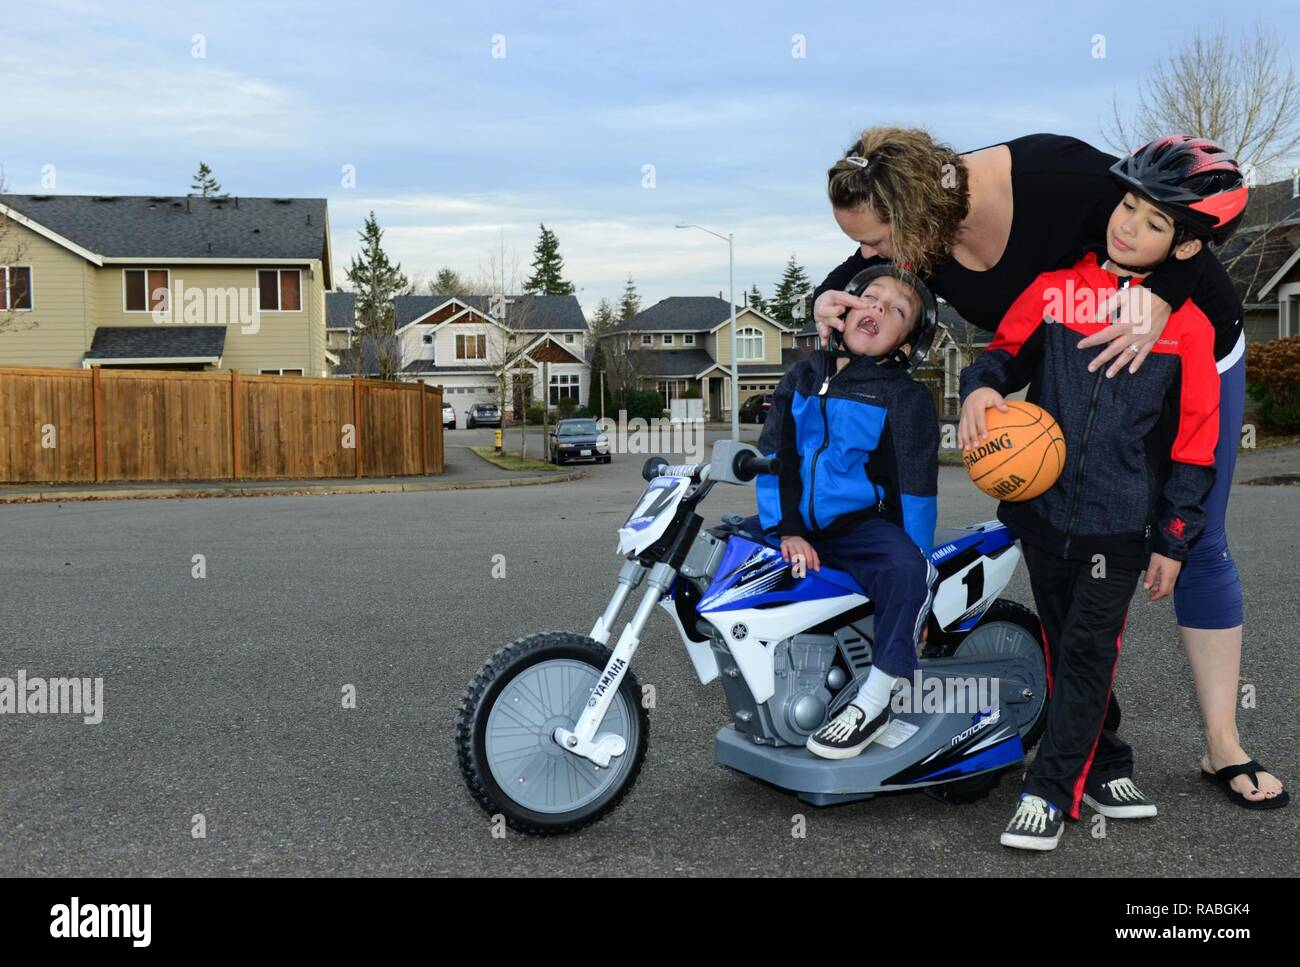 Coast Guard Chief Petty Officer Nichole Vital plays with her kids, Noah and Ethan, outside their home in Bothell, Wash., Jan. 16, 2017. Noah, 5, and Ethan, 7, both have special needs, making Vital's ability to have a balanced work life routine a little difficult. U.S. Coast Guard - Stock Image